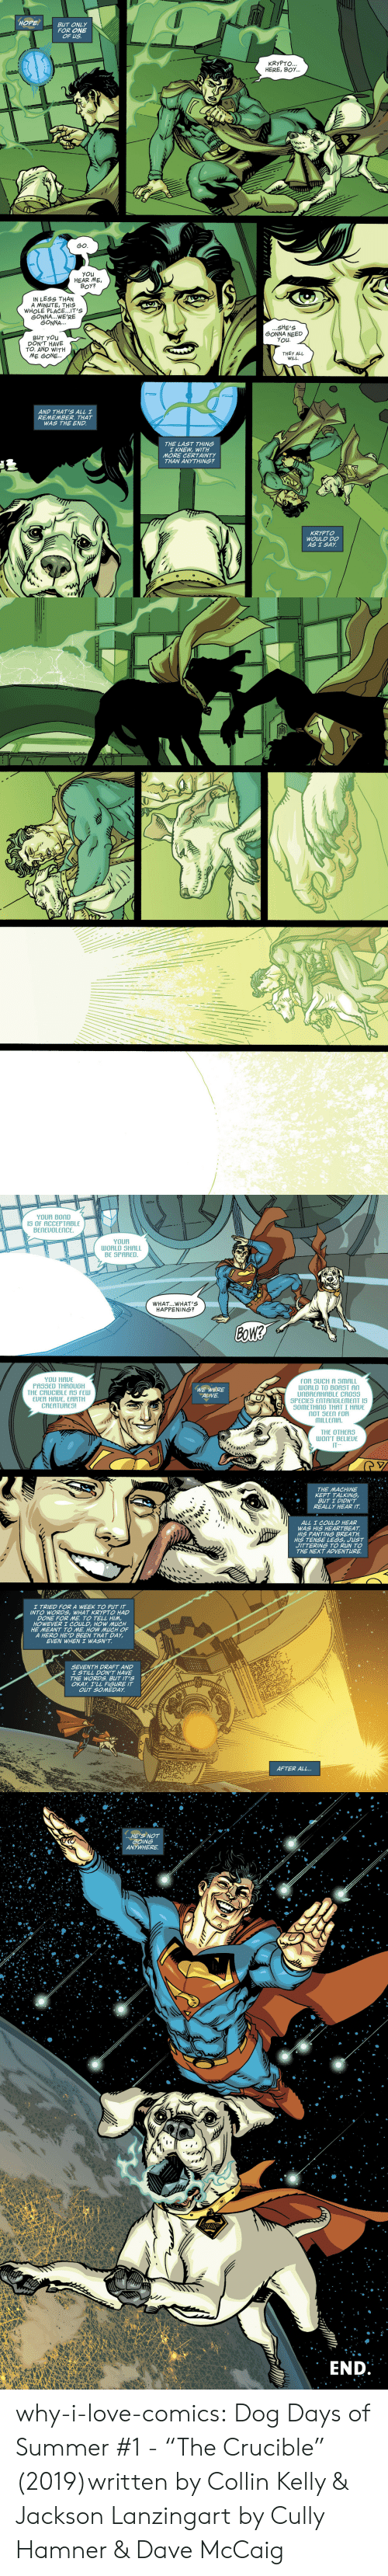 """Alive, Love, and Run: HOPE  BUT ONLY  FOR ONE  OF US  KRYPTO...  HERE, BOY...  GO.  YOu  HEAR ME,  BOY?  IN LESS THAN  A MINUTE, THIS  WHOLE PLACE..IT'S  GONNA... WE'RE  GONNA...  ...SHE'S  GONNA NEED  YOu  BUT YOu  DON'T HAVE  TO. AND WITH  ME GONE..  THEY ALL  WILL  AND THAT'S ALL I  REMEMBER. THAT  WAS THE END  THE LAST THING  I KNEW, WITH  MORE CERTAINTY  THAN ANYTHING?  KRYPTO  WOULD DO  AS I SAY   YOUR BOND  IS Of ACCEPTABLE  BENEVOLENCE.  YOUR  WORLD SHALL  BE SPARED.  WHAT...WHAT'S  HAPPENING?  BOW?  YOU HAVE  PASSED THROUGH  THE CRUCIBLE AS FEW  EVER HAUE, EARTH  CREATURES!  fOR SUCH A SMALL  WORLD TO BOAST AN  UNBREAKABLE CROSS  SPECIES ENTANGLEMENT IS  SOMETHING THAT I HAVE  nOT SEEN FOR  MILLENIA.  WE WERE  ALIVE  THE OTHERS  Won'T BELIEVE  IT-  THE MACHINE  KEPT TALKING  BUT I DIDN'T  REALLY HEAR IT  ALL I COULD HEAR  WAS HIS HEARTBEAT  HIS PANTING BREATH.  HIS TENSE LEGS, JUST  JITTERING TO RUN TO  THE NEXT ADVENTURE  I TRIED FORA WEEK TO PUT IT  INTO WORDS, WHAT KRYPTO HAD  DONE FOR ME. TO TELL HIM,  HOWEVER I COULD, HOW MUCH  HE MEANT TO ME, HOW MUCH OF  A HERO HE'D BEEN THAT DAY,  EVEN WHEN I WASN'T  SEVENTH DRAFT AND  I STILL DON'T HAVE  THE WORDS. BUT IT'S  OKAY. I'LL FIGURE IT  OUT SOMEDAY  25CERN  AFTER ALL...   .HE'S NOT  GOING  ANYWHERE  y  END why-i-love-comics:  Dog Days of Summer #1 -""""The Crucible"""" (2019)written by Collin Kelly & Jackson Lanzingart by Cully Hamner & Dave McCaig"""